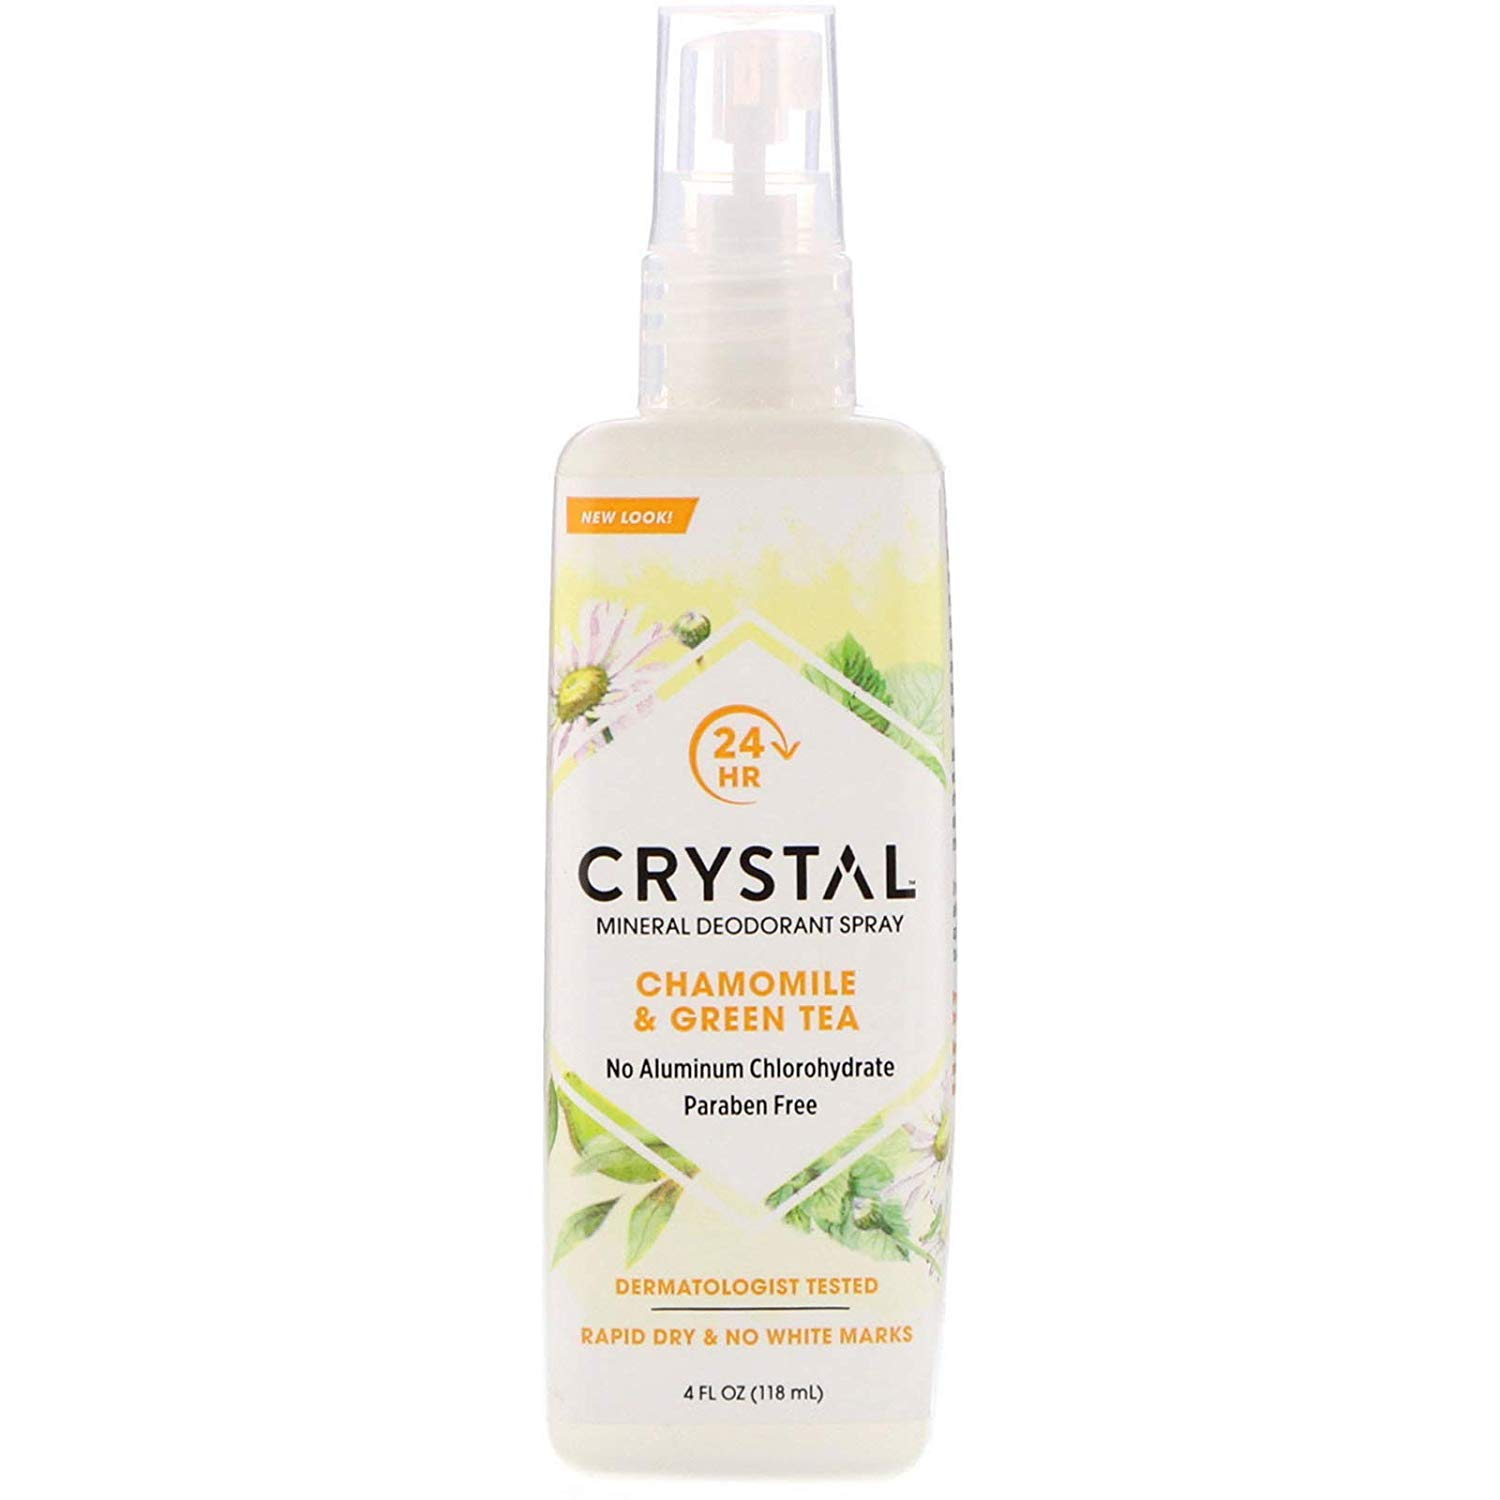 Crystal Essence Mineral Deodorant Spray, Chamomile & Green Tea 4 oz